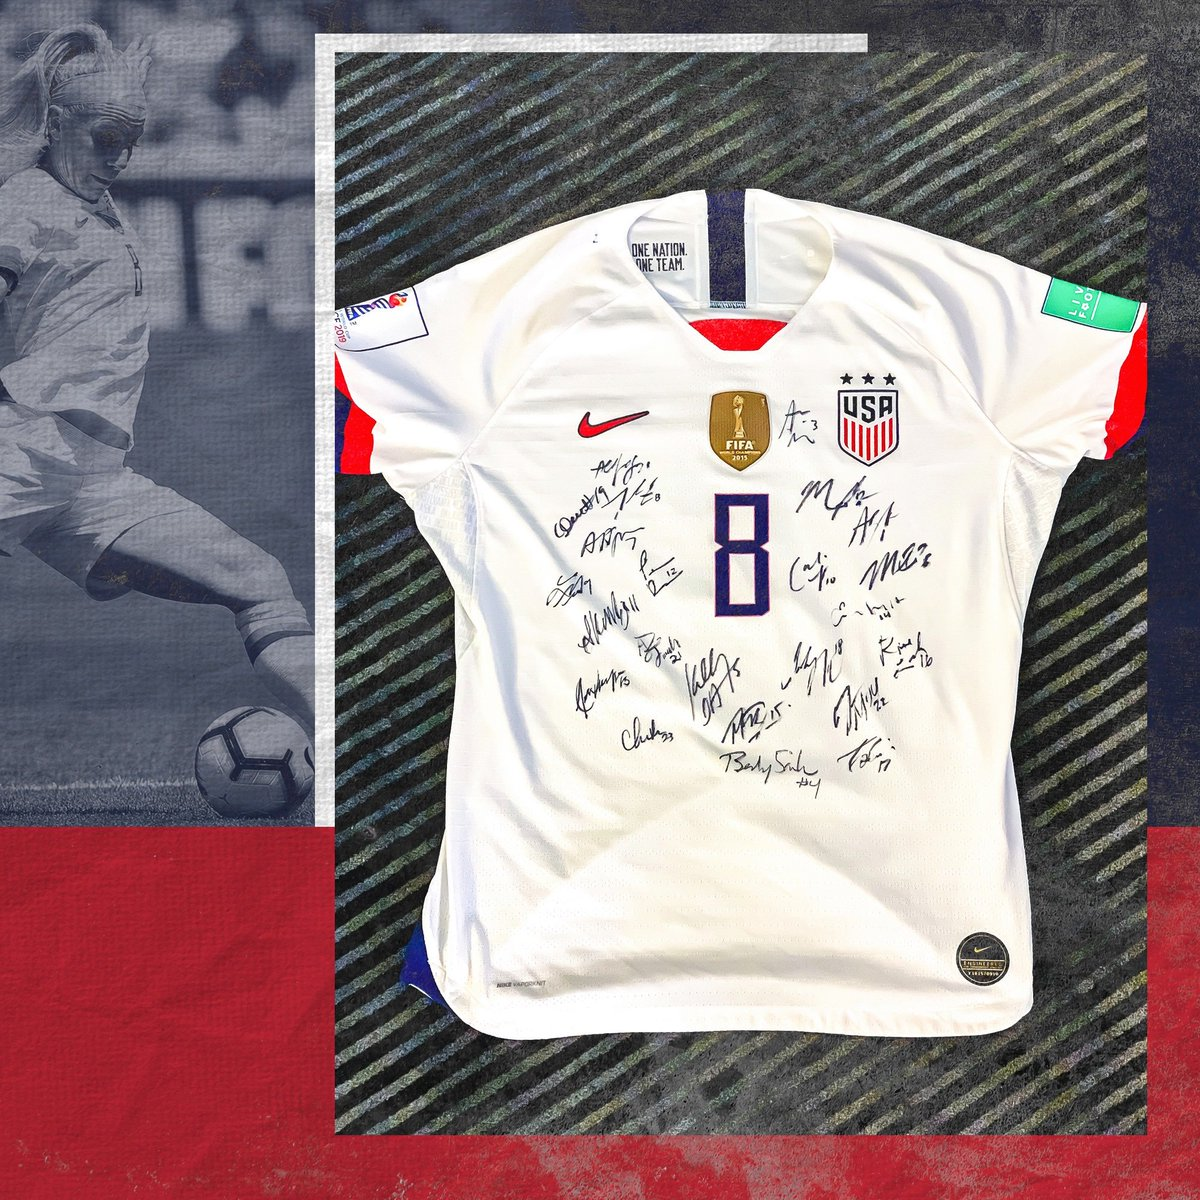 Dont miss out on this piece of history. Only one day left to bid on this one-of-a-kind game-worn jersey from the 2019 FIFA Womens World Cup signed by the entire #USWNT team. Click the link in our bio to bid now before time runs out! bit.ly/2Swpm9s